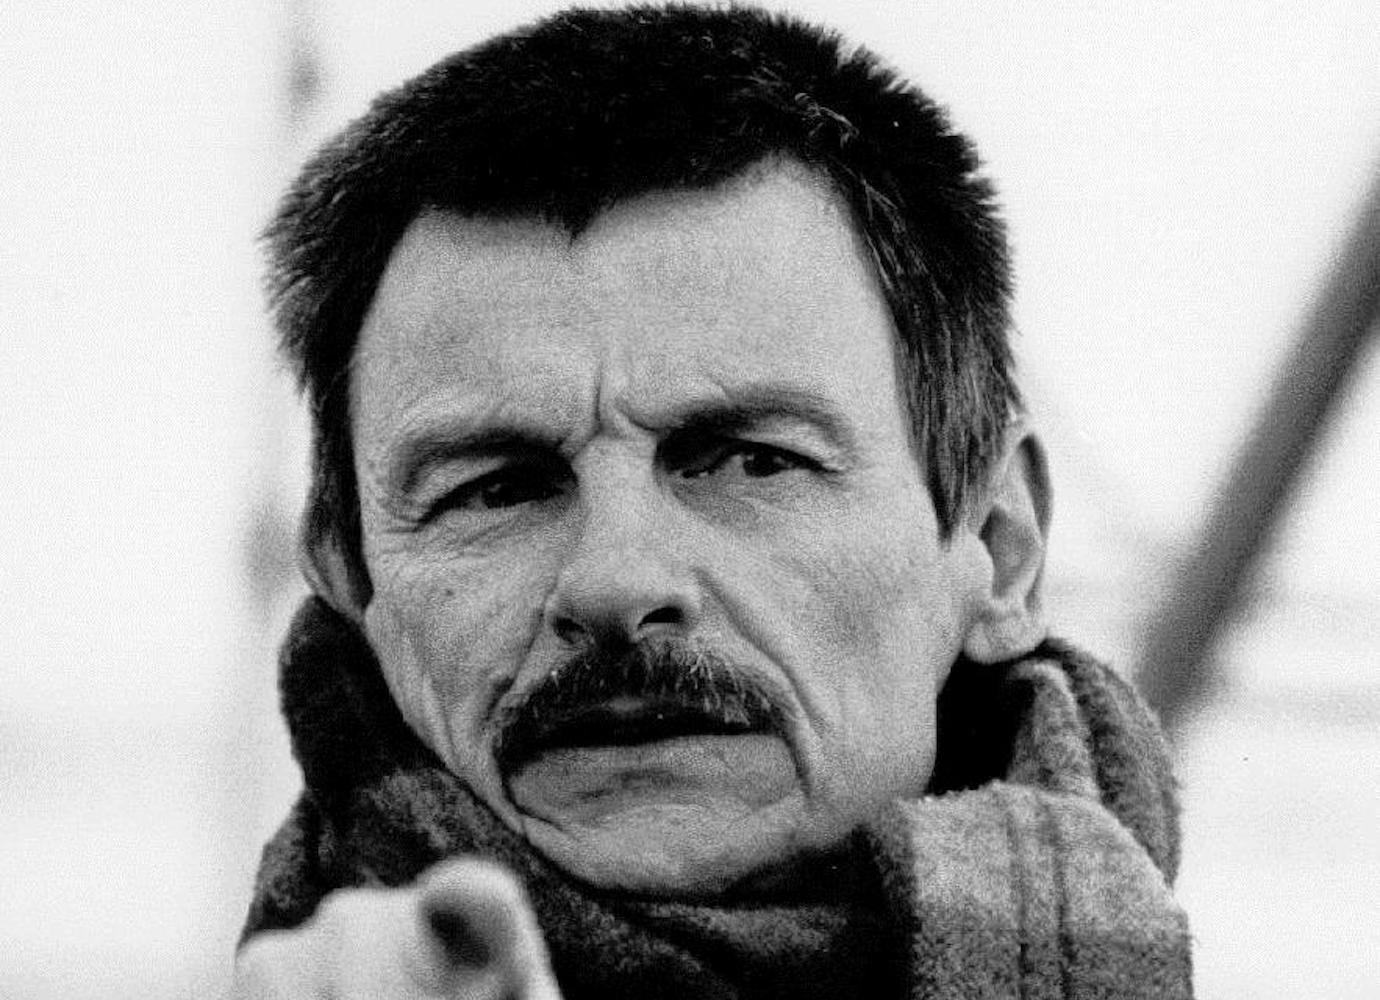 Life of director Andrei Tarkovsky celebrated in new TV series by Kirill Serebrennikov